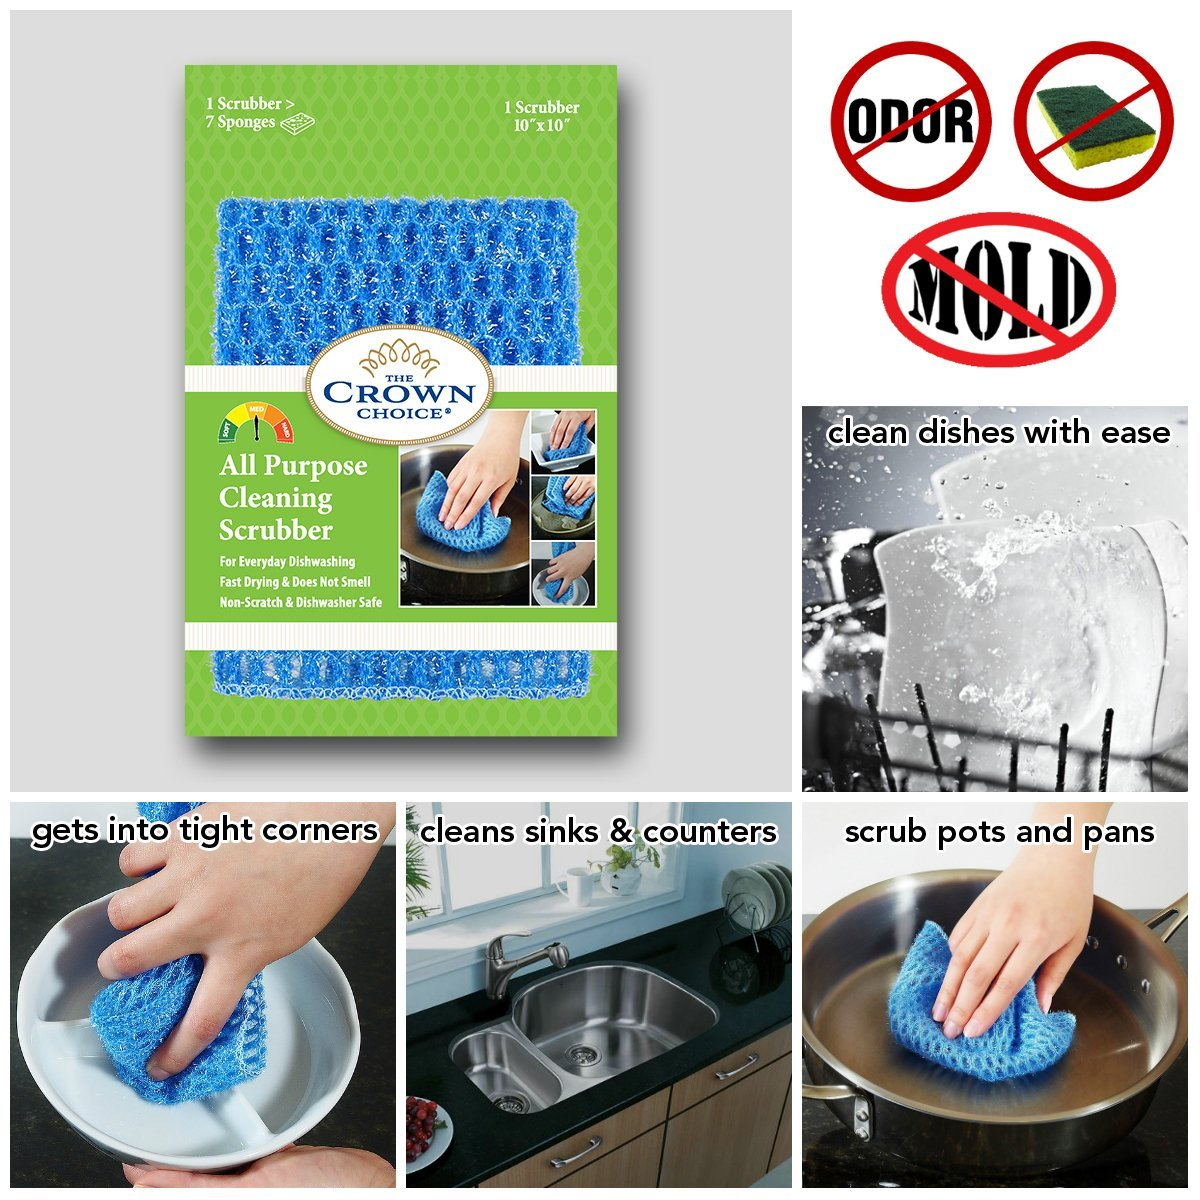 NO ODOR Dish Cloth for All Purpose Dish Washing (3PK) | No Mildew Smell from Sponges, Scrubbers, Wash Cloths, Rags, Brush | Outlast ANY Kitchen Scrubbing Sponge or Cotton Dishcloth by The Crown Choice (Image #2)